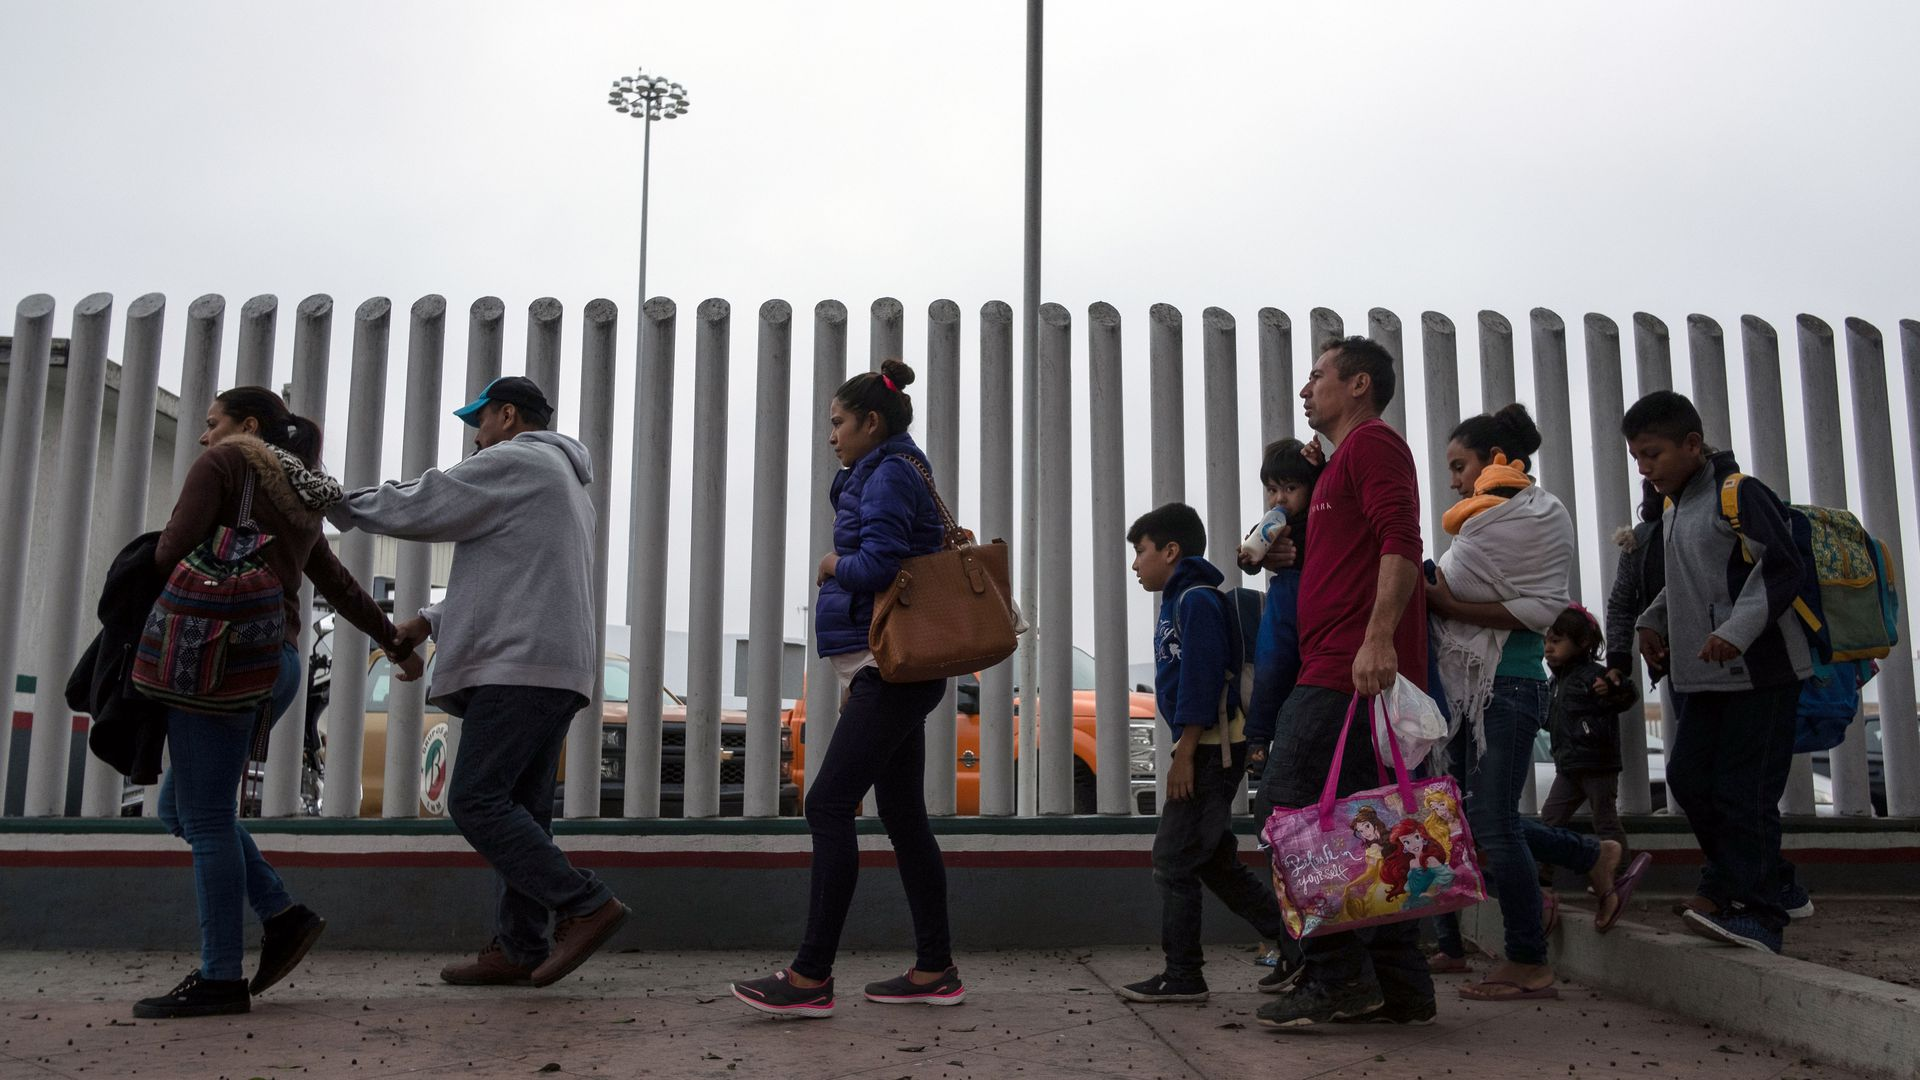 A line of adults and children walk toward a port of entry with a fence next to them.